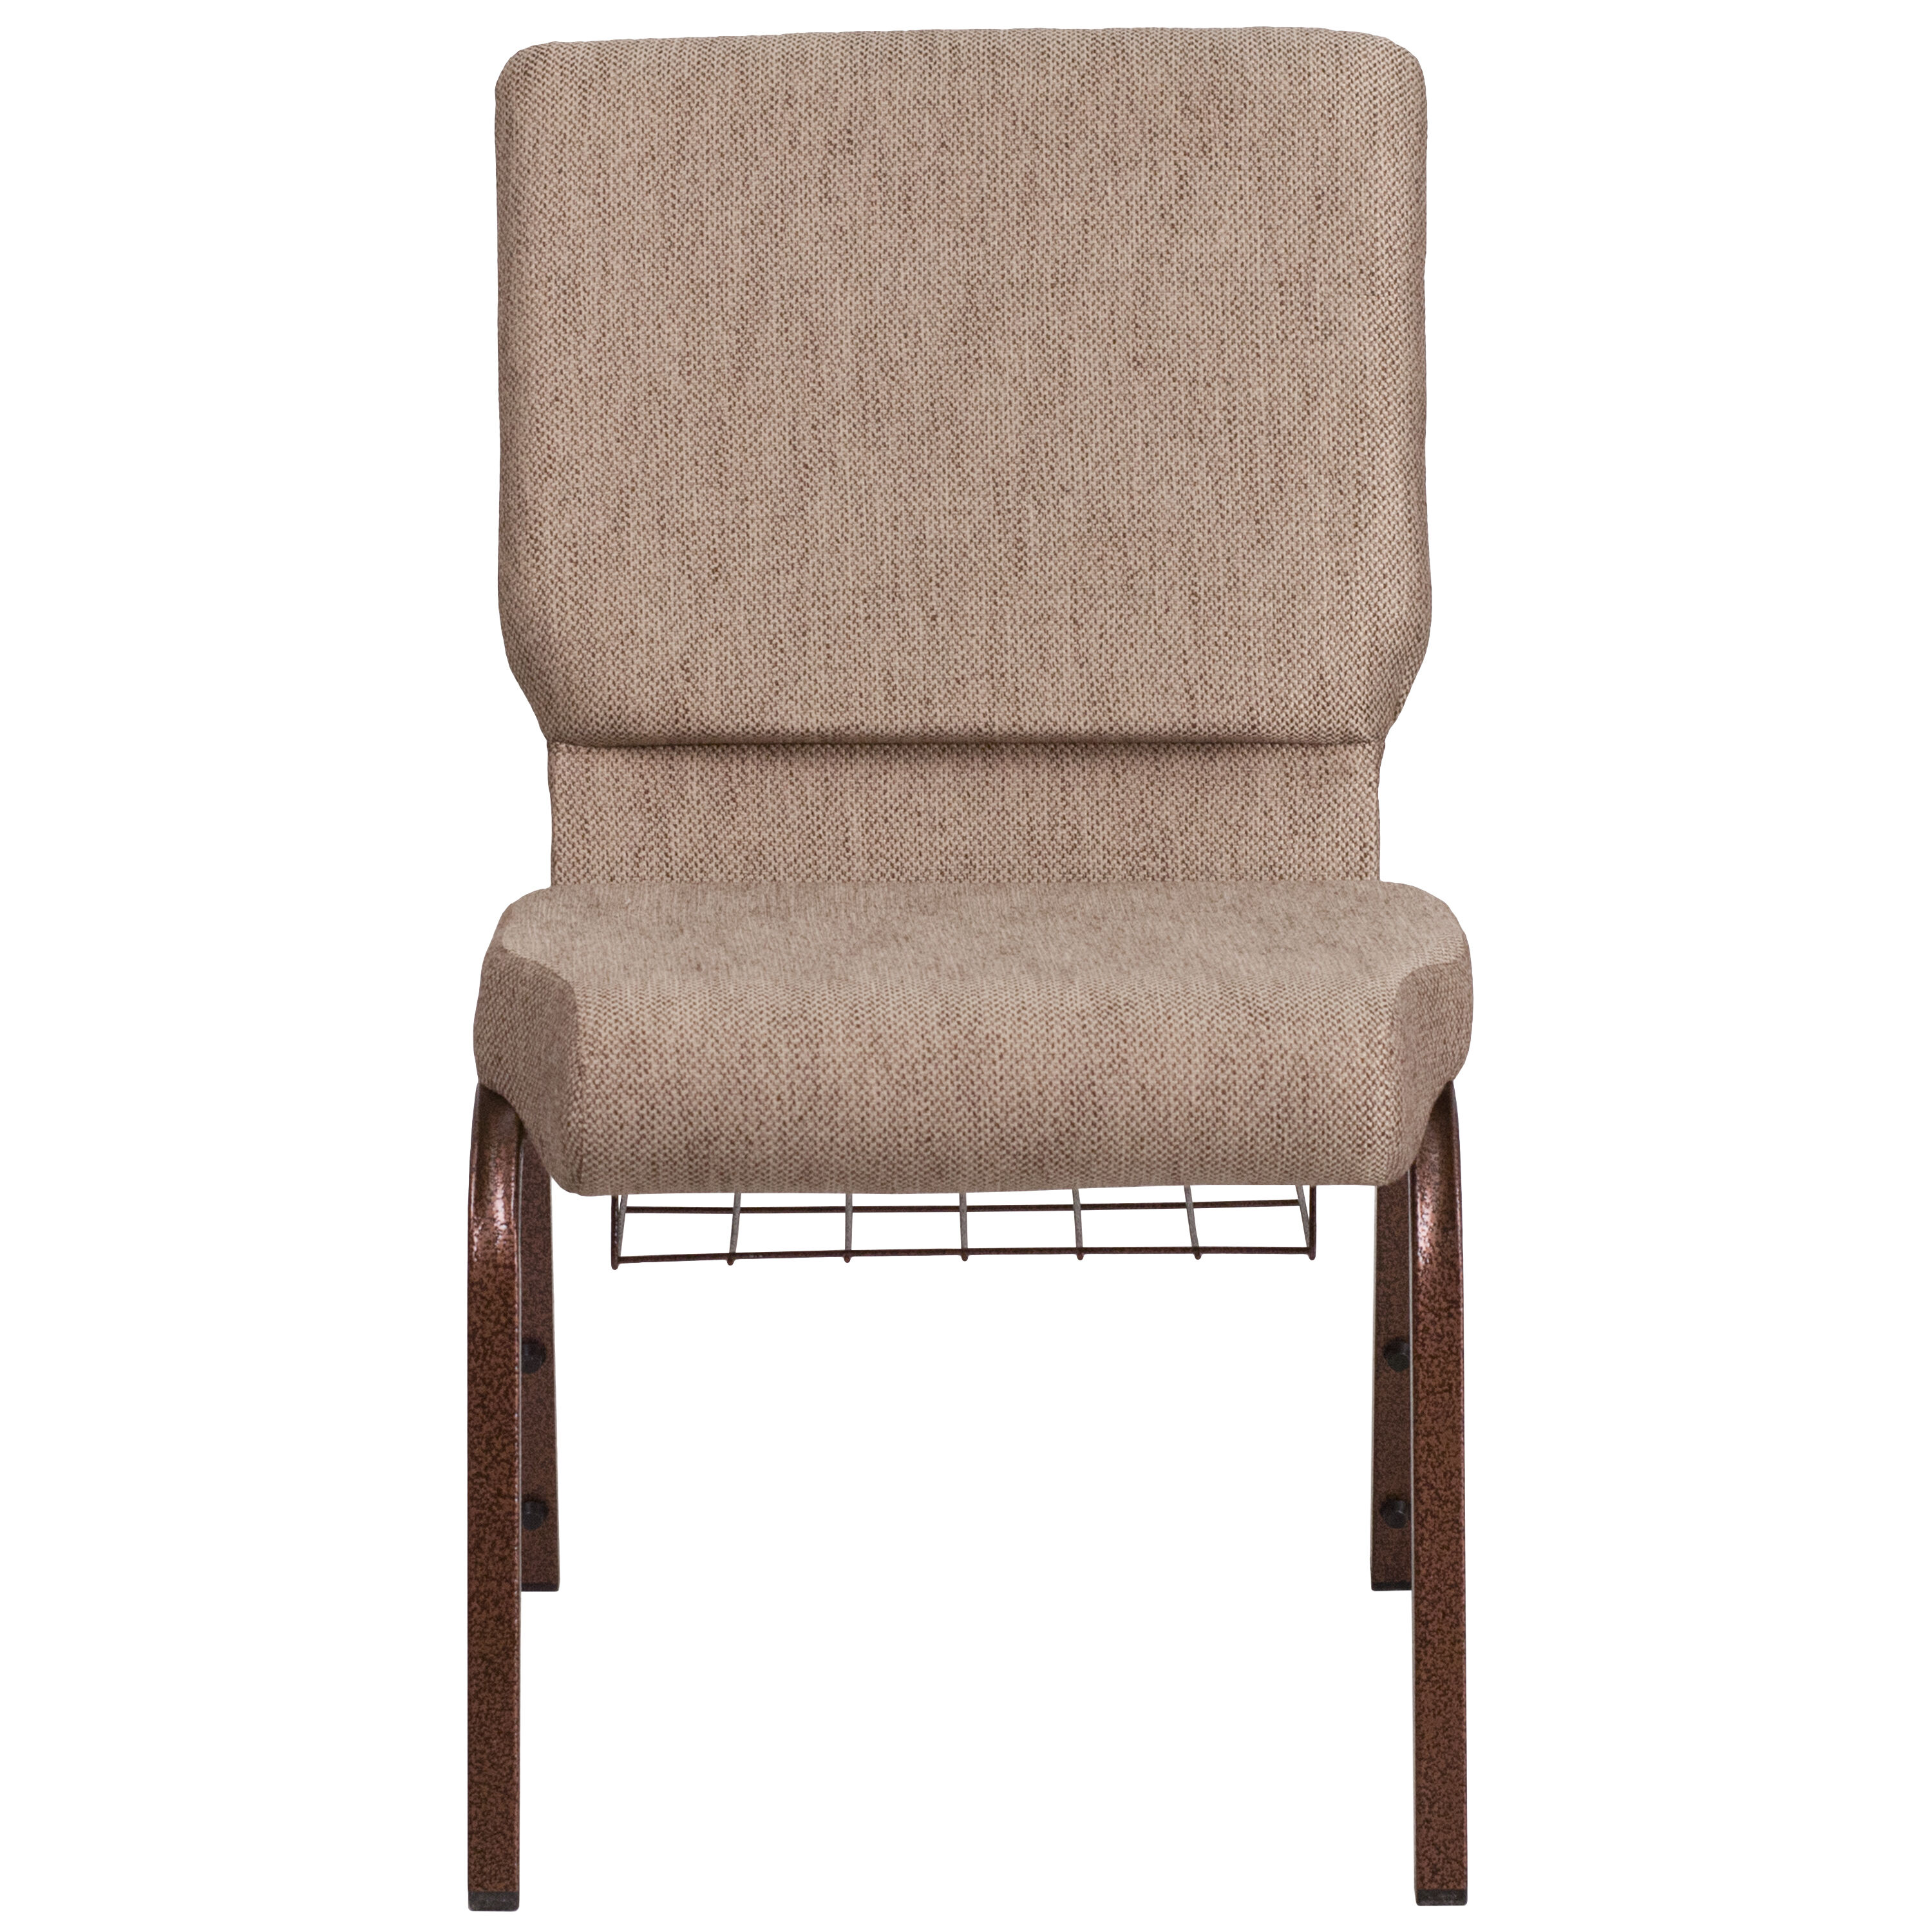 Gentil Beige Fabric Church Chair FD CH02185 CV BGE1 BAS GG | ChurchChairs4Less.com